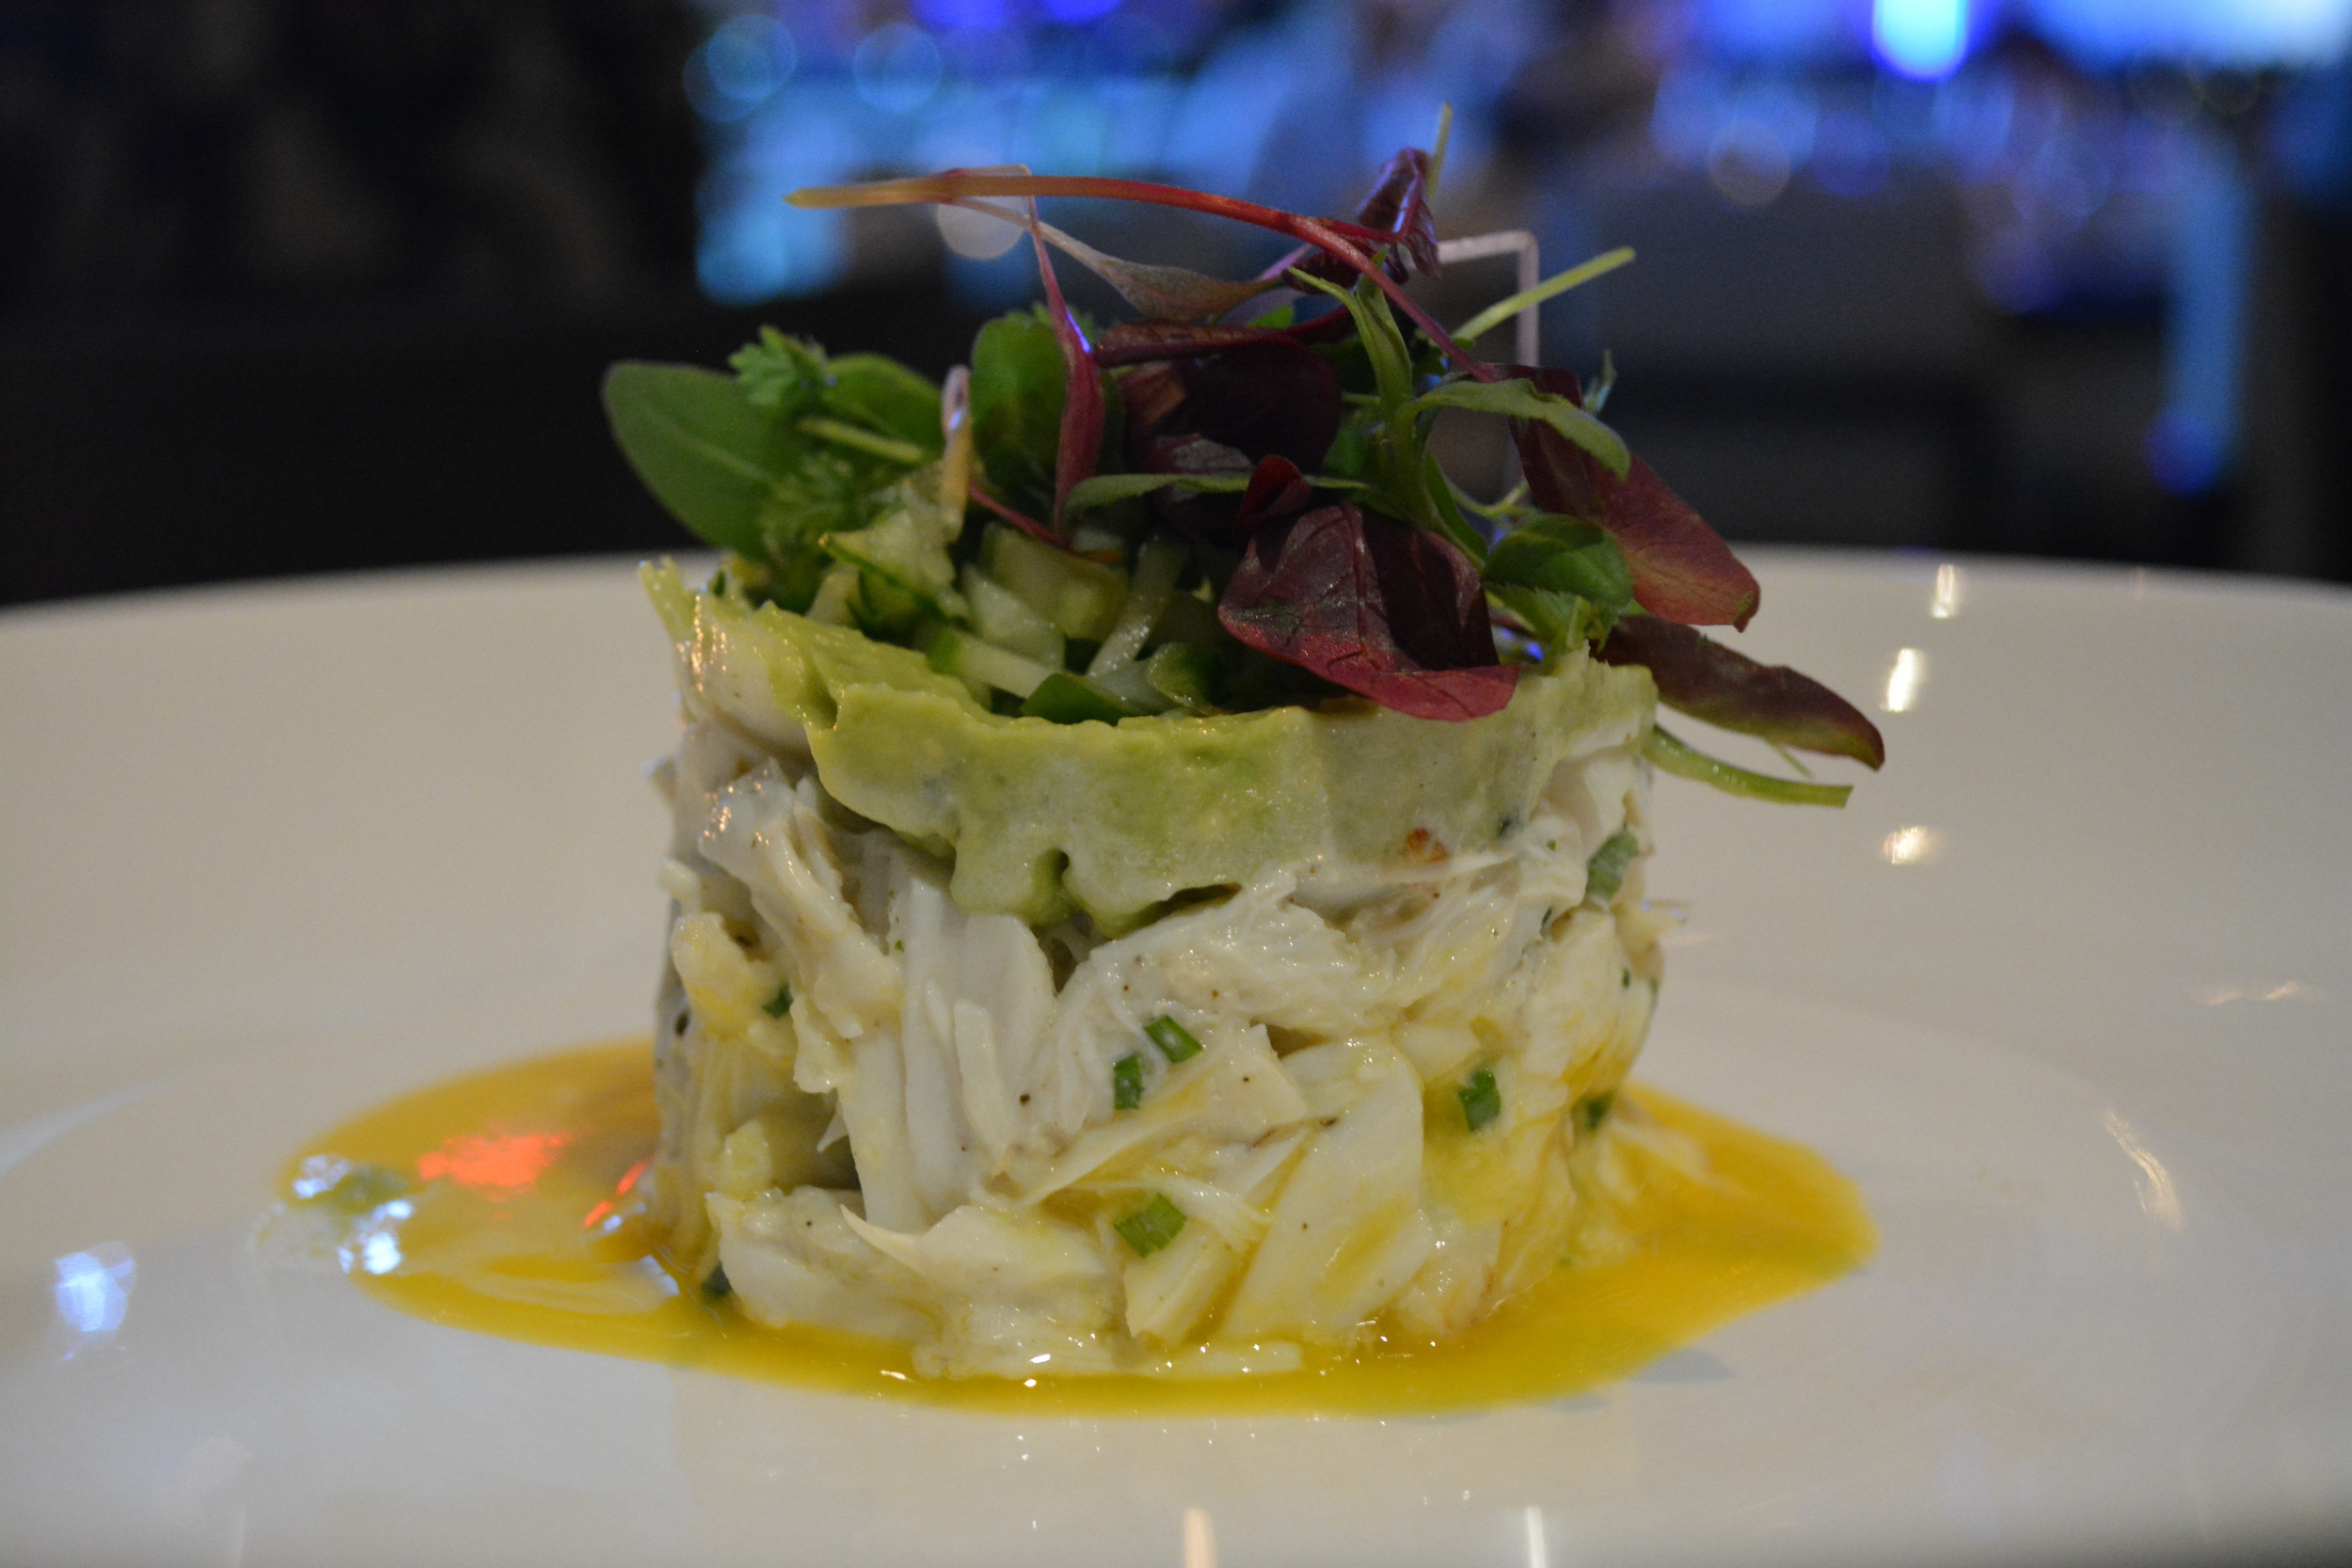 Found in the appetizer section of the menu is the crab salad.